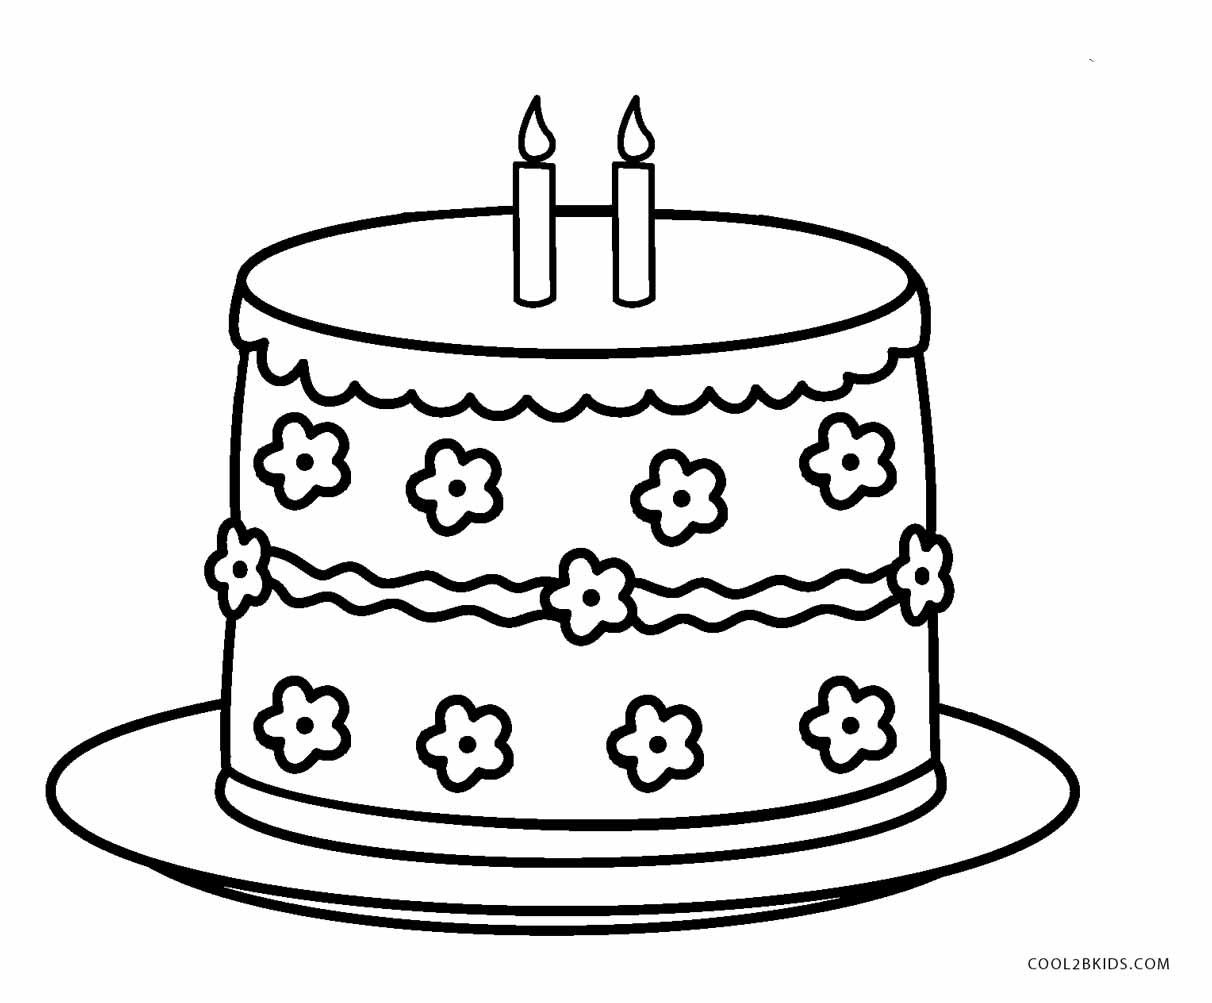 Hilaire image for printable cake